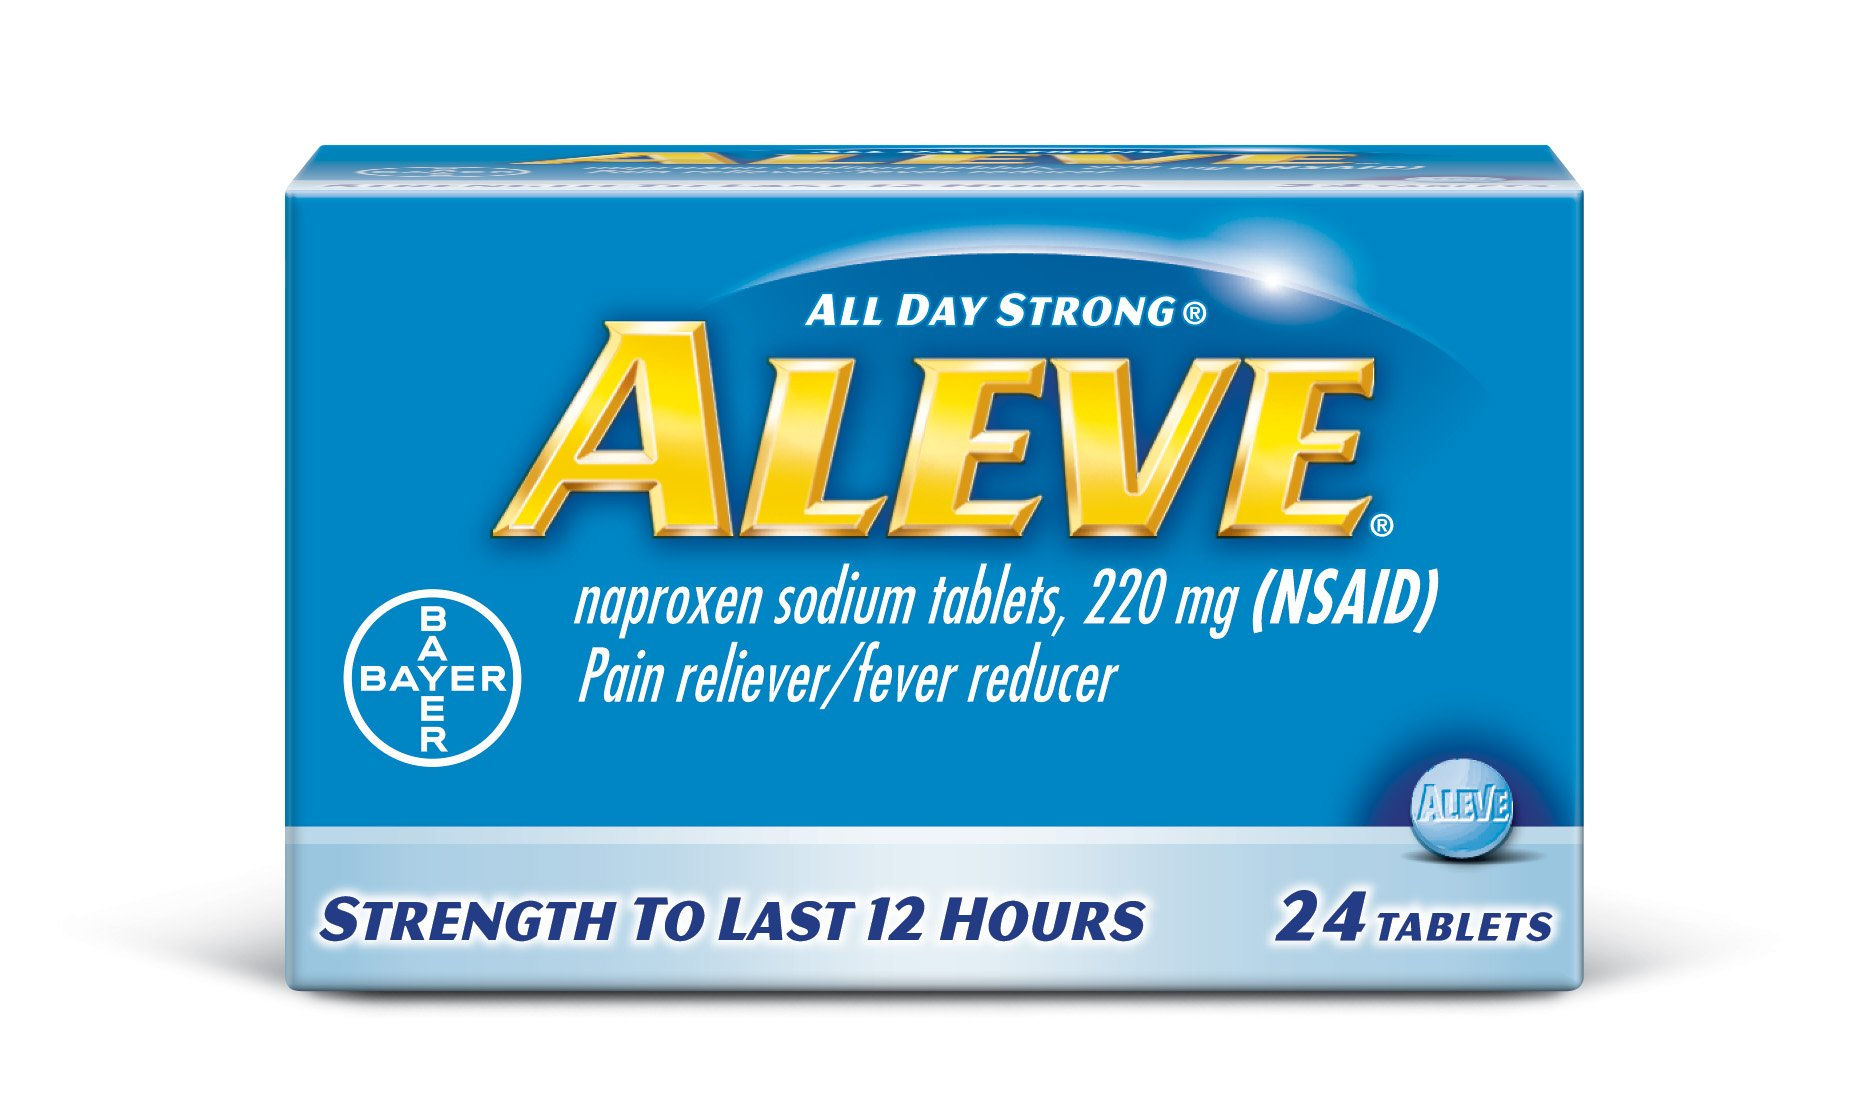 Aleve Tablets with Naproxen Sodium, 220mg (NSAID) Pain Reliever/Fever Reducer, 24 Count, Blue